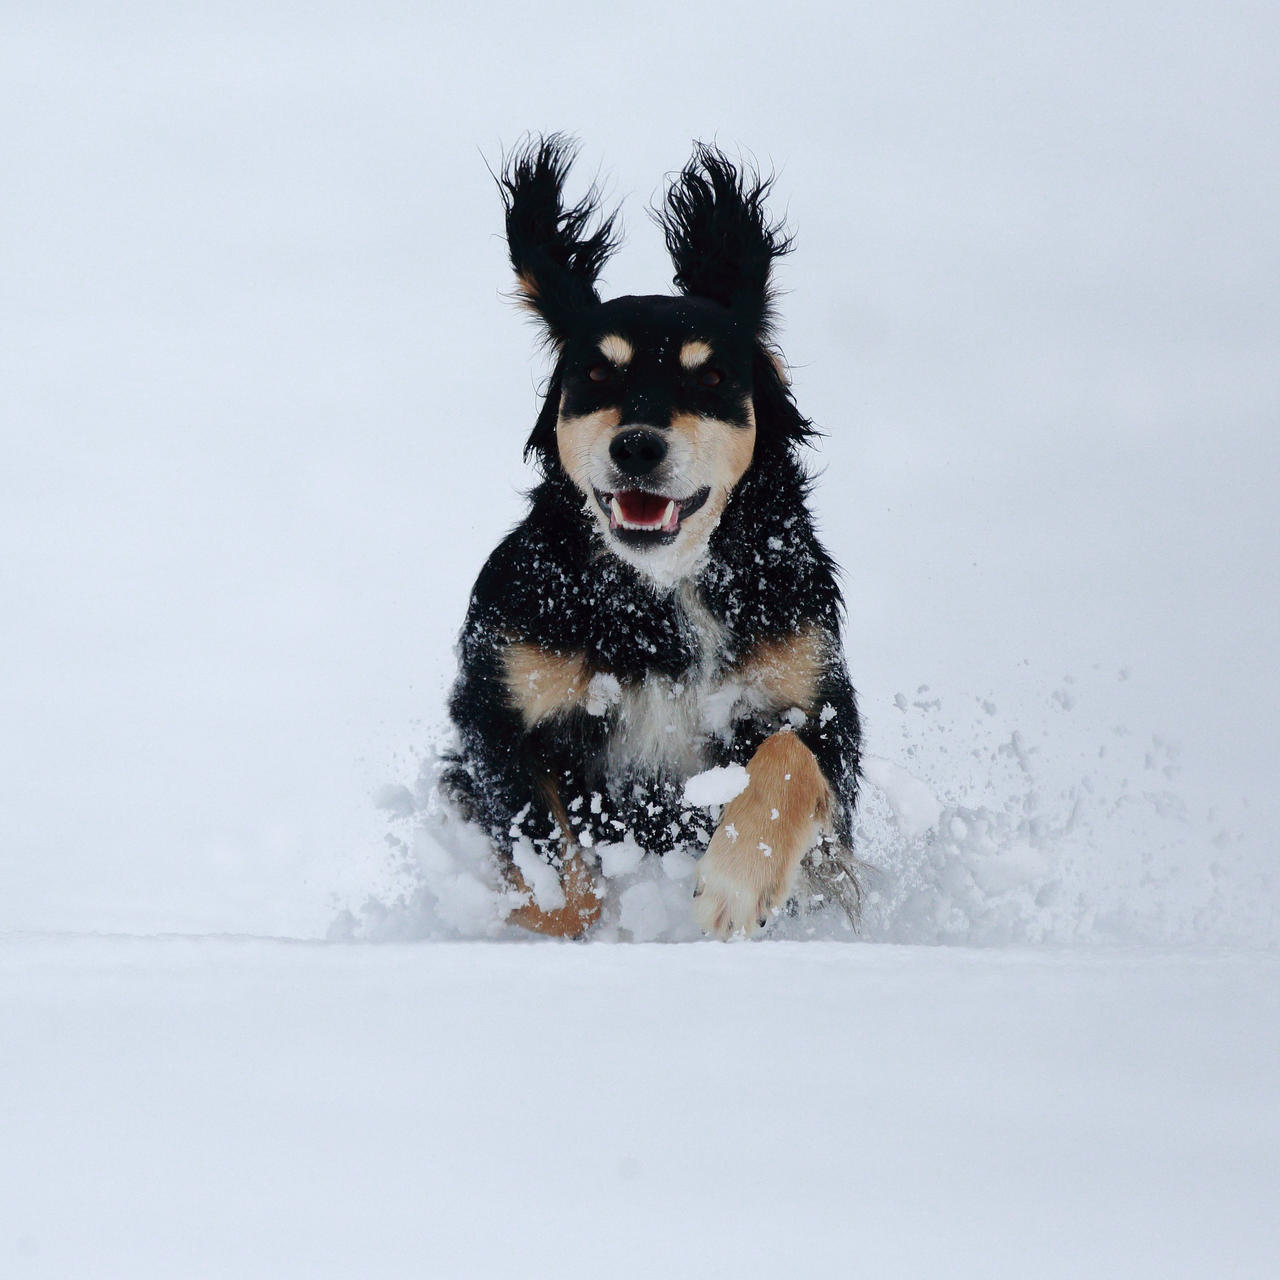 Timi in the snow by luka567